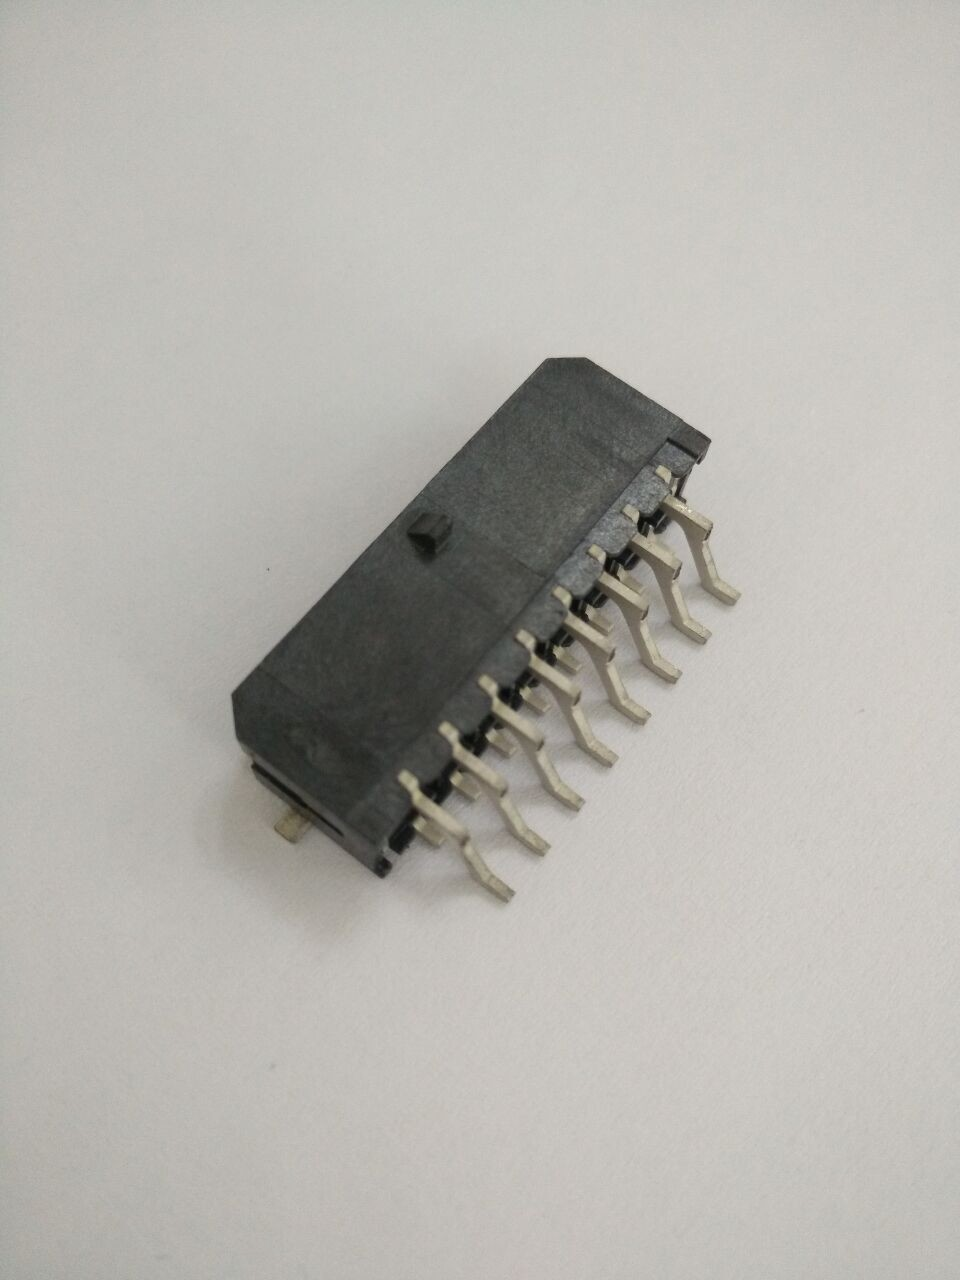 PCB Board Connector With Solder Tab Tin